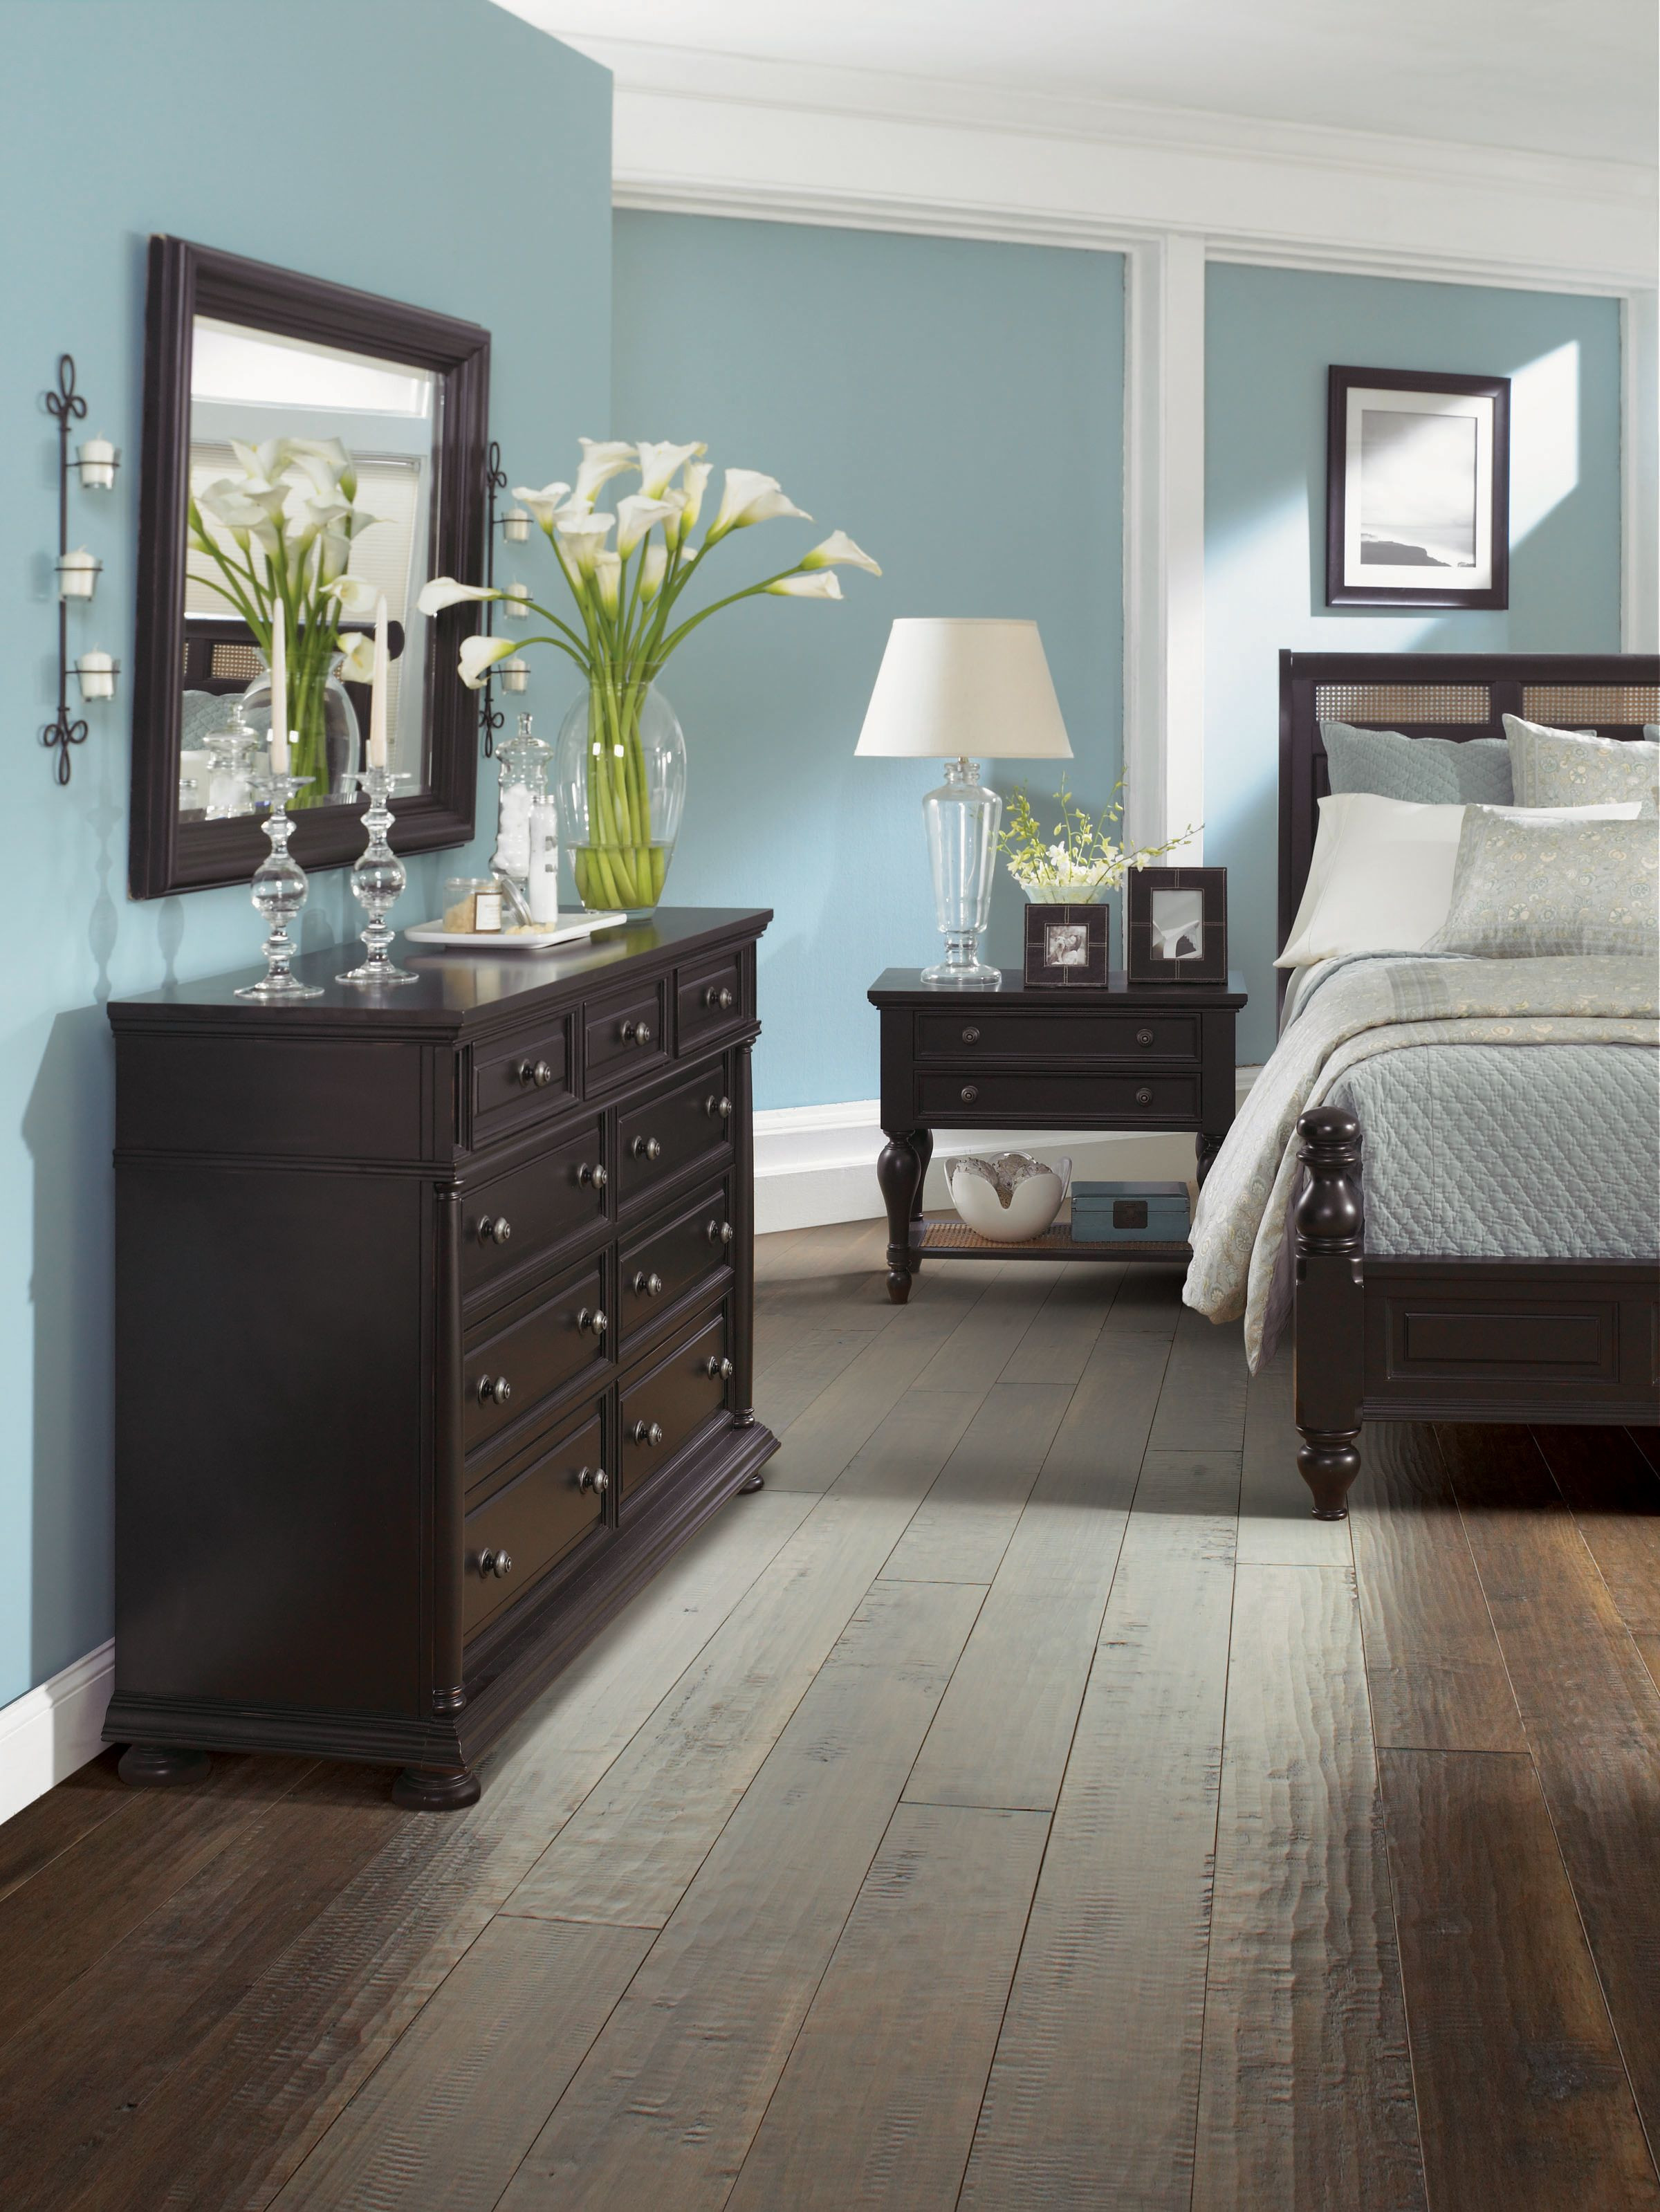 furniture colors for dark hardwood floors of 30 wood flooring ideas and trends for your stunning bedroom within my challenge is the furniture bc the walls have to stay white so ii¸ guess the furniture all has to match